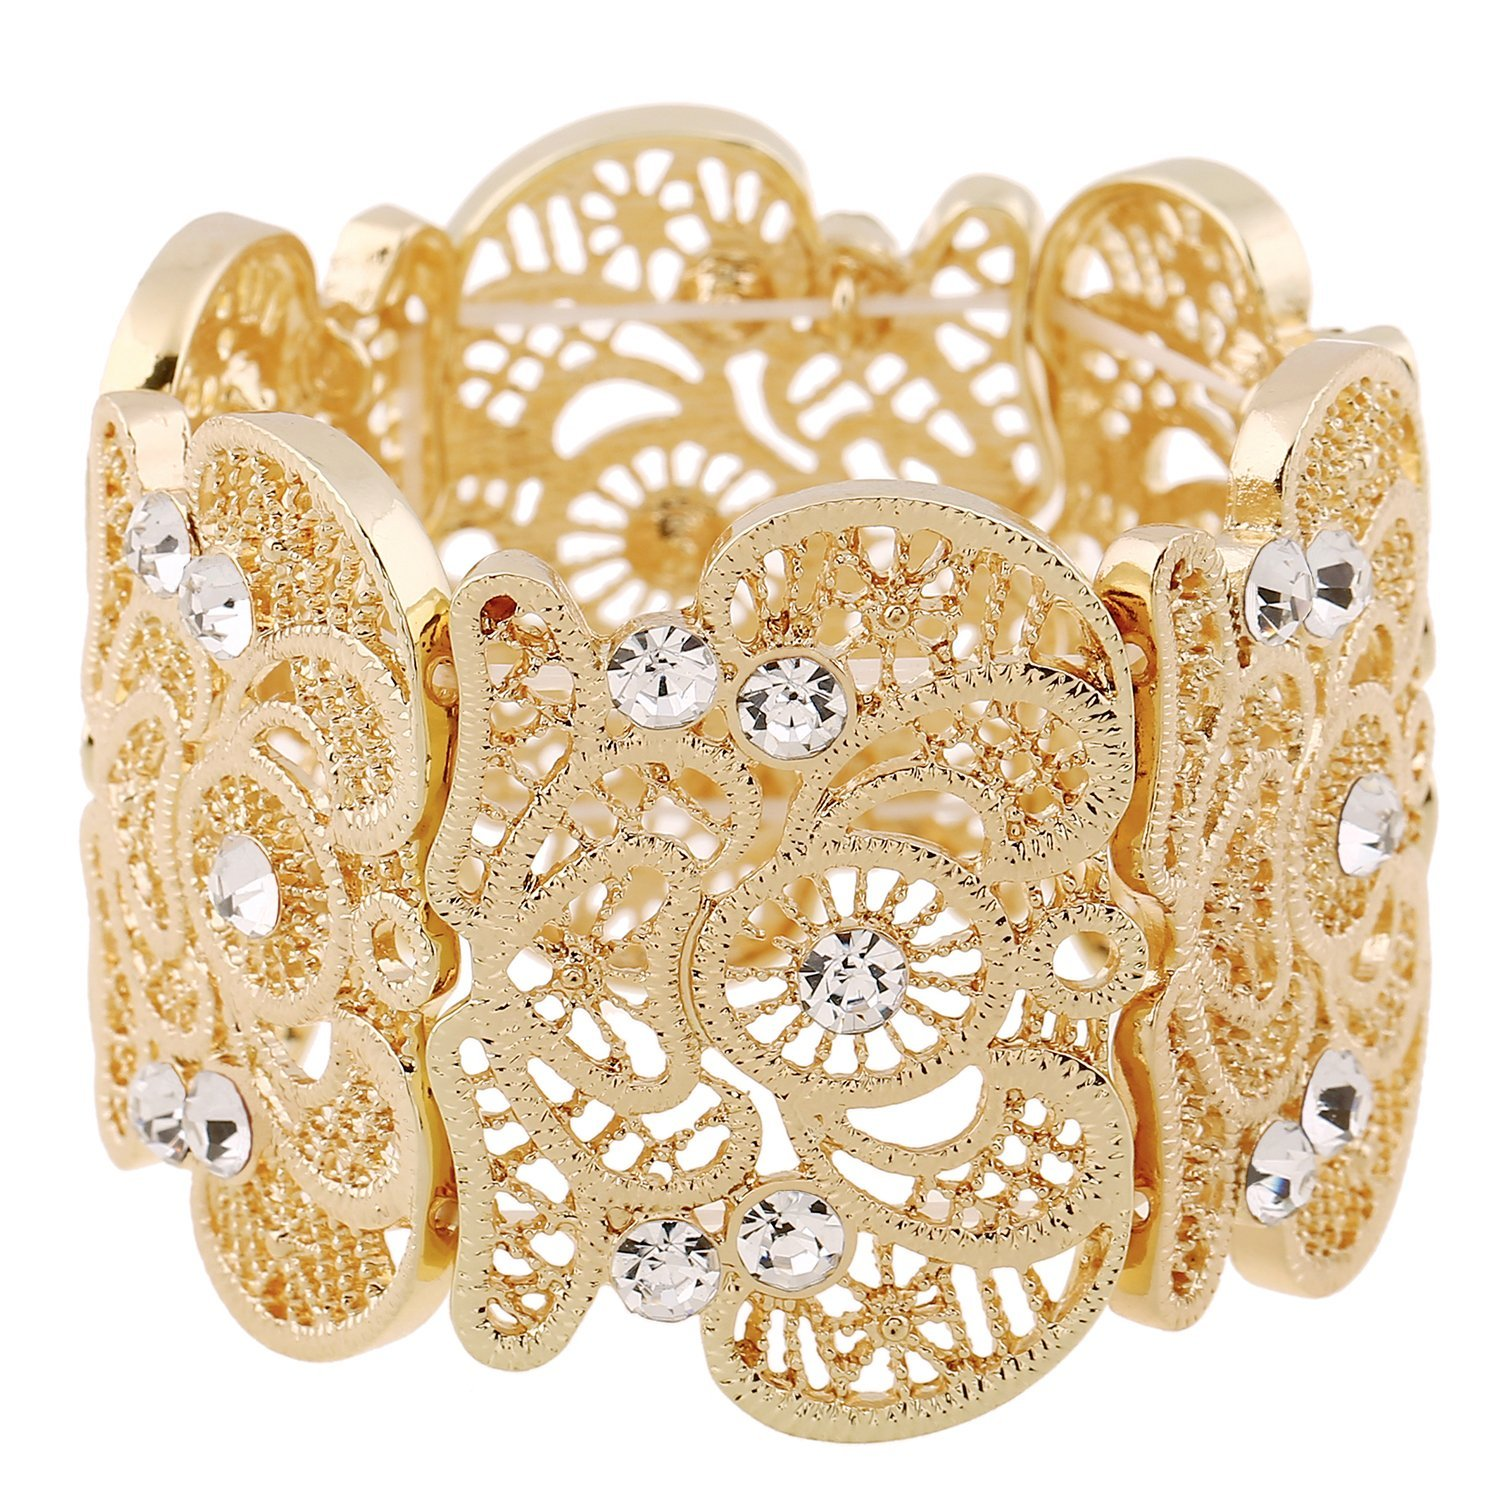 D EXCEED Womens Bohemian Lace Bracelet Vintage Filigree Cuff Bangle Bracelet Wide Stretch Rhinestone Bracelets D Exceed Jewelry BL140003